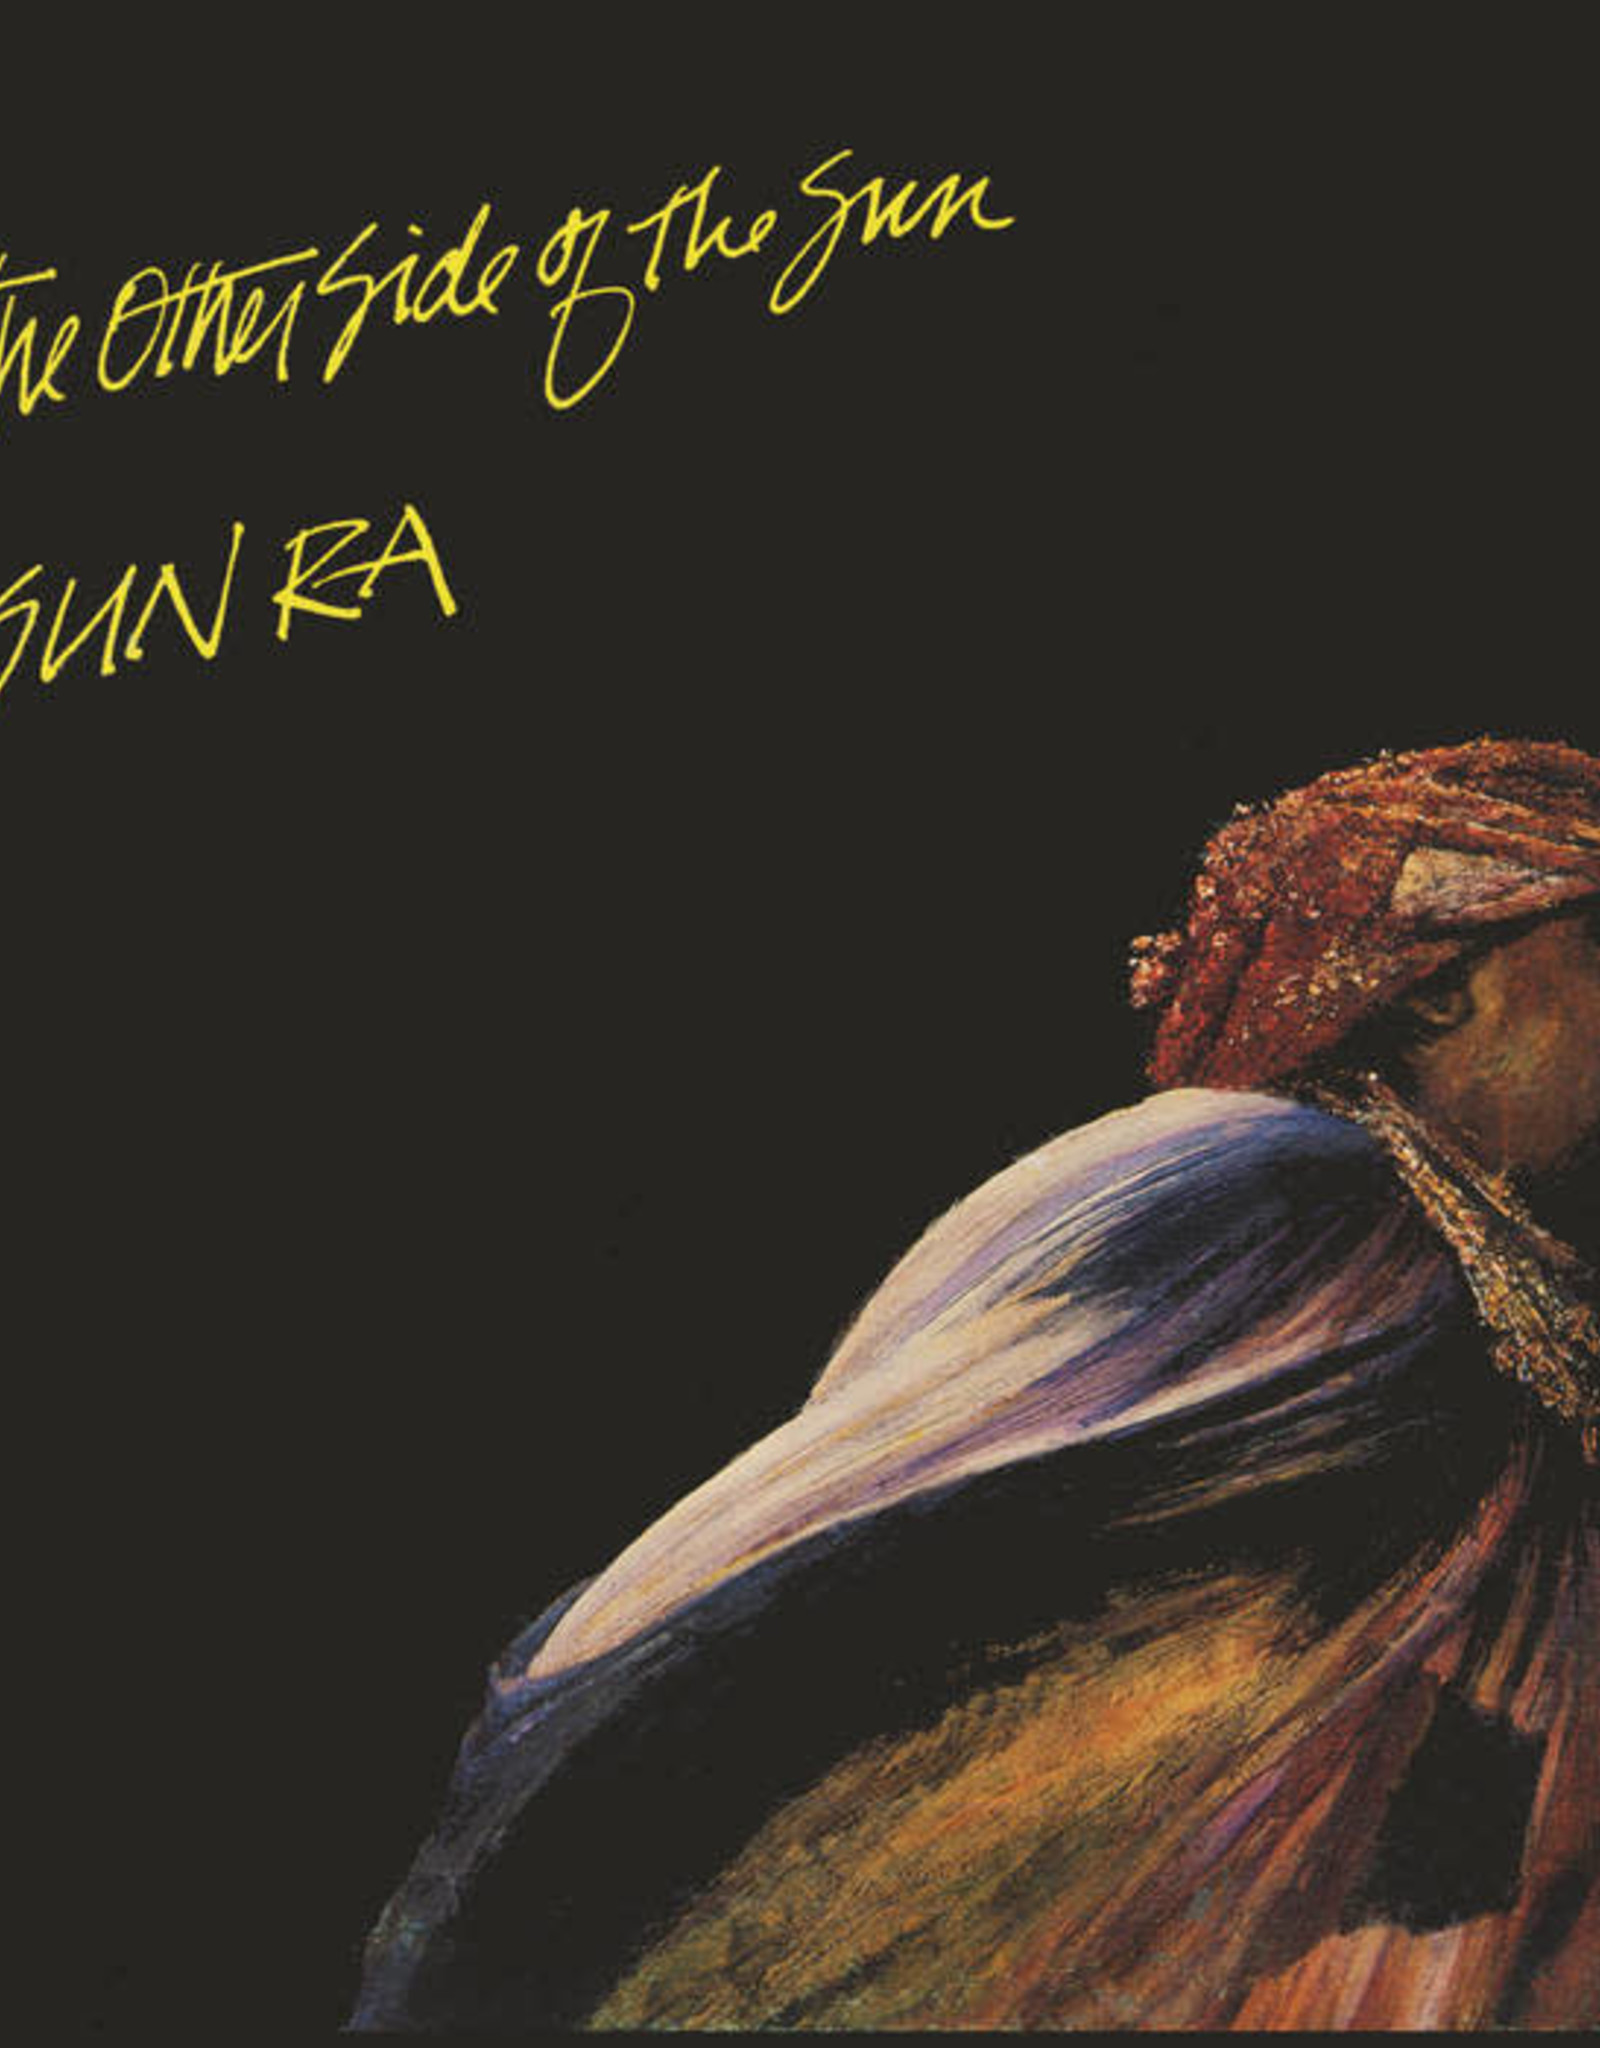 Sun Ra - The Other Side Of The Sun